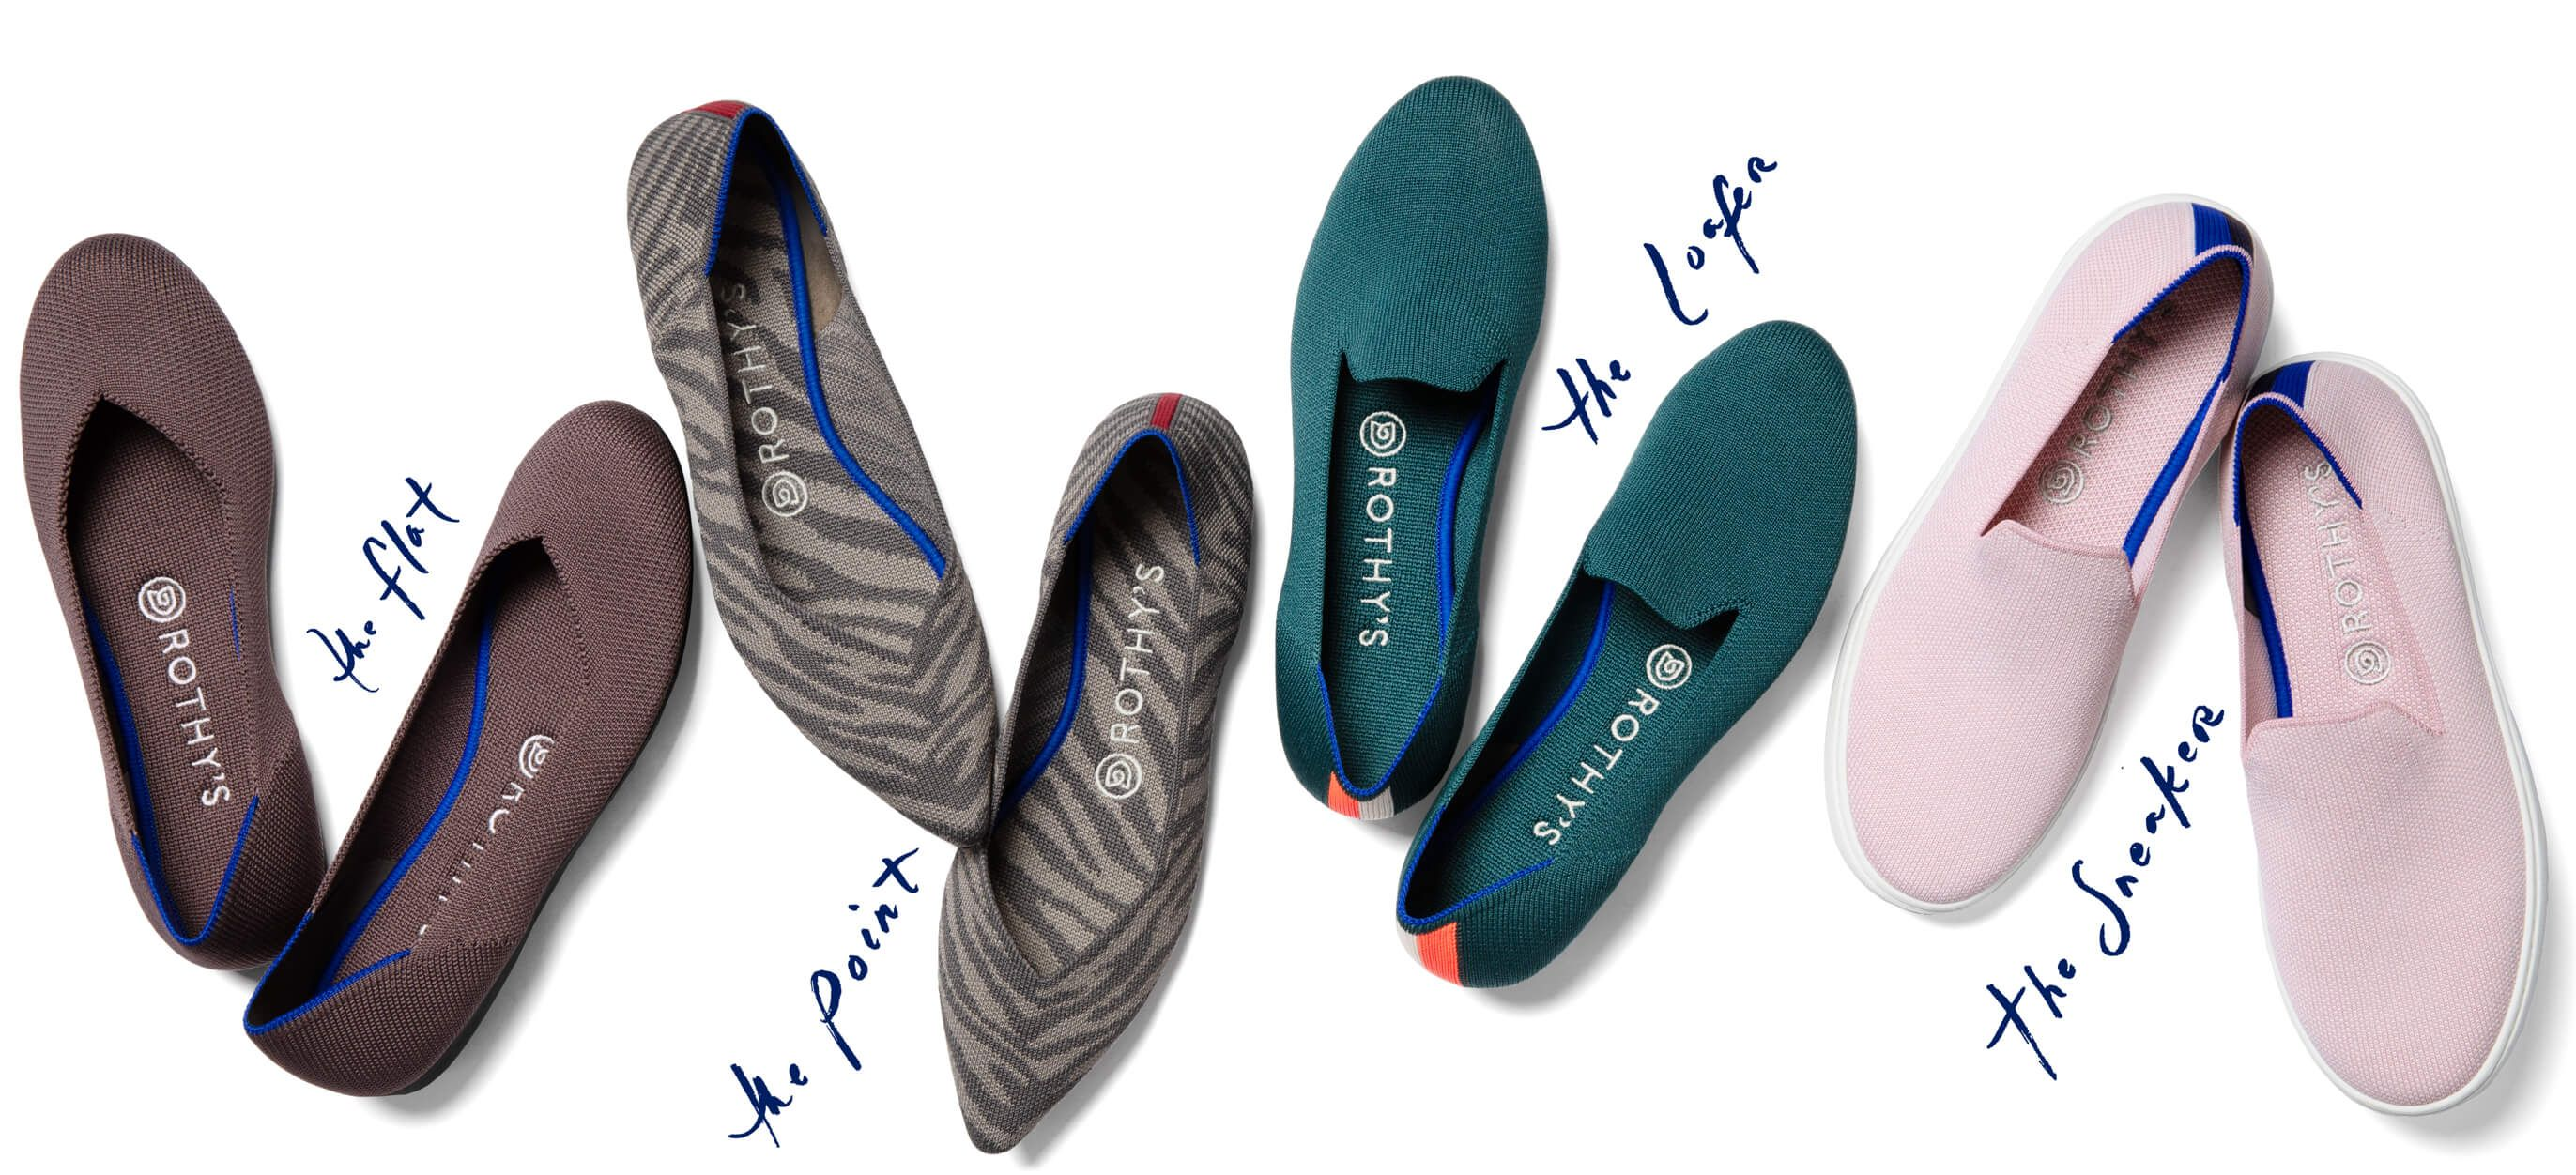 Recycled Plastic | Shoes, Plastic shoes